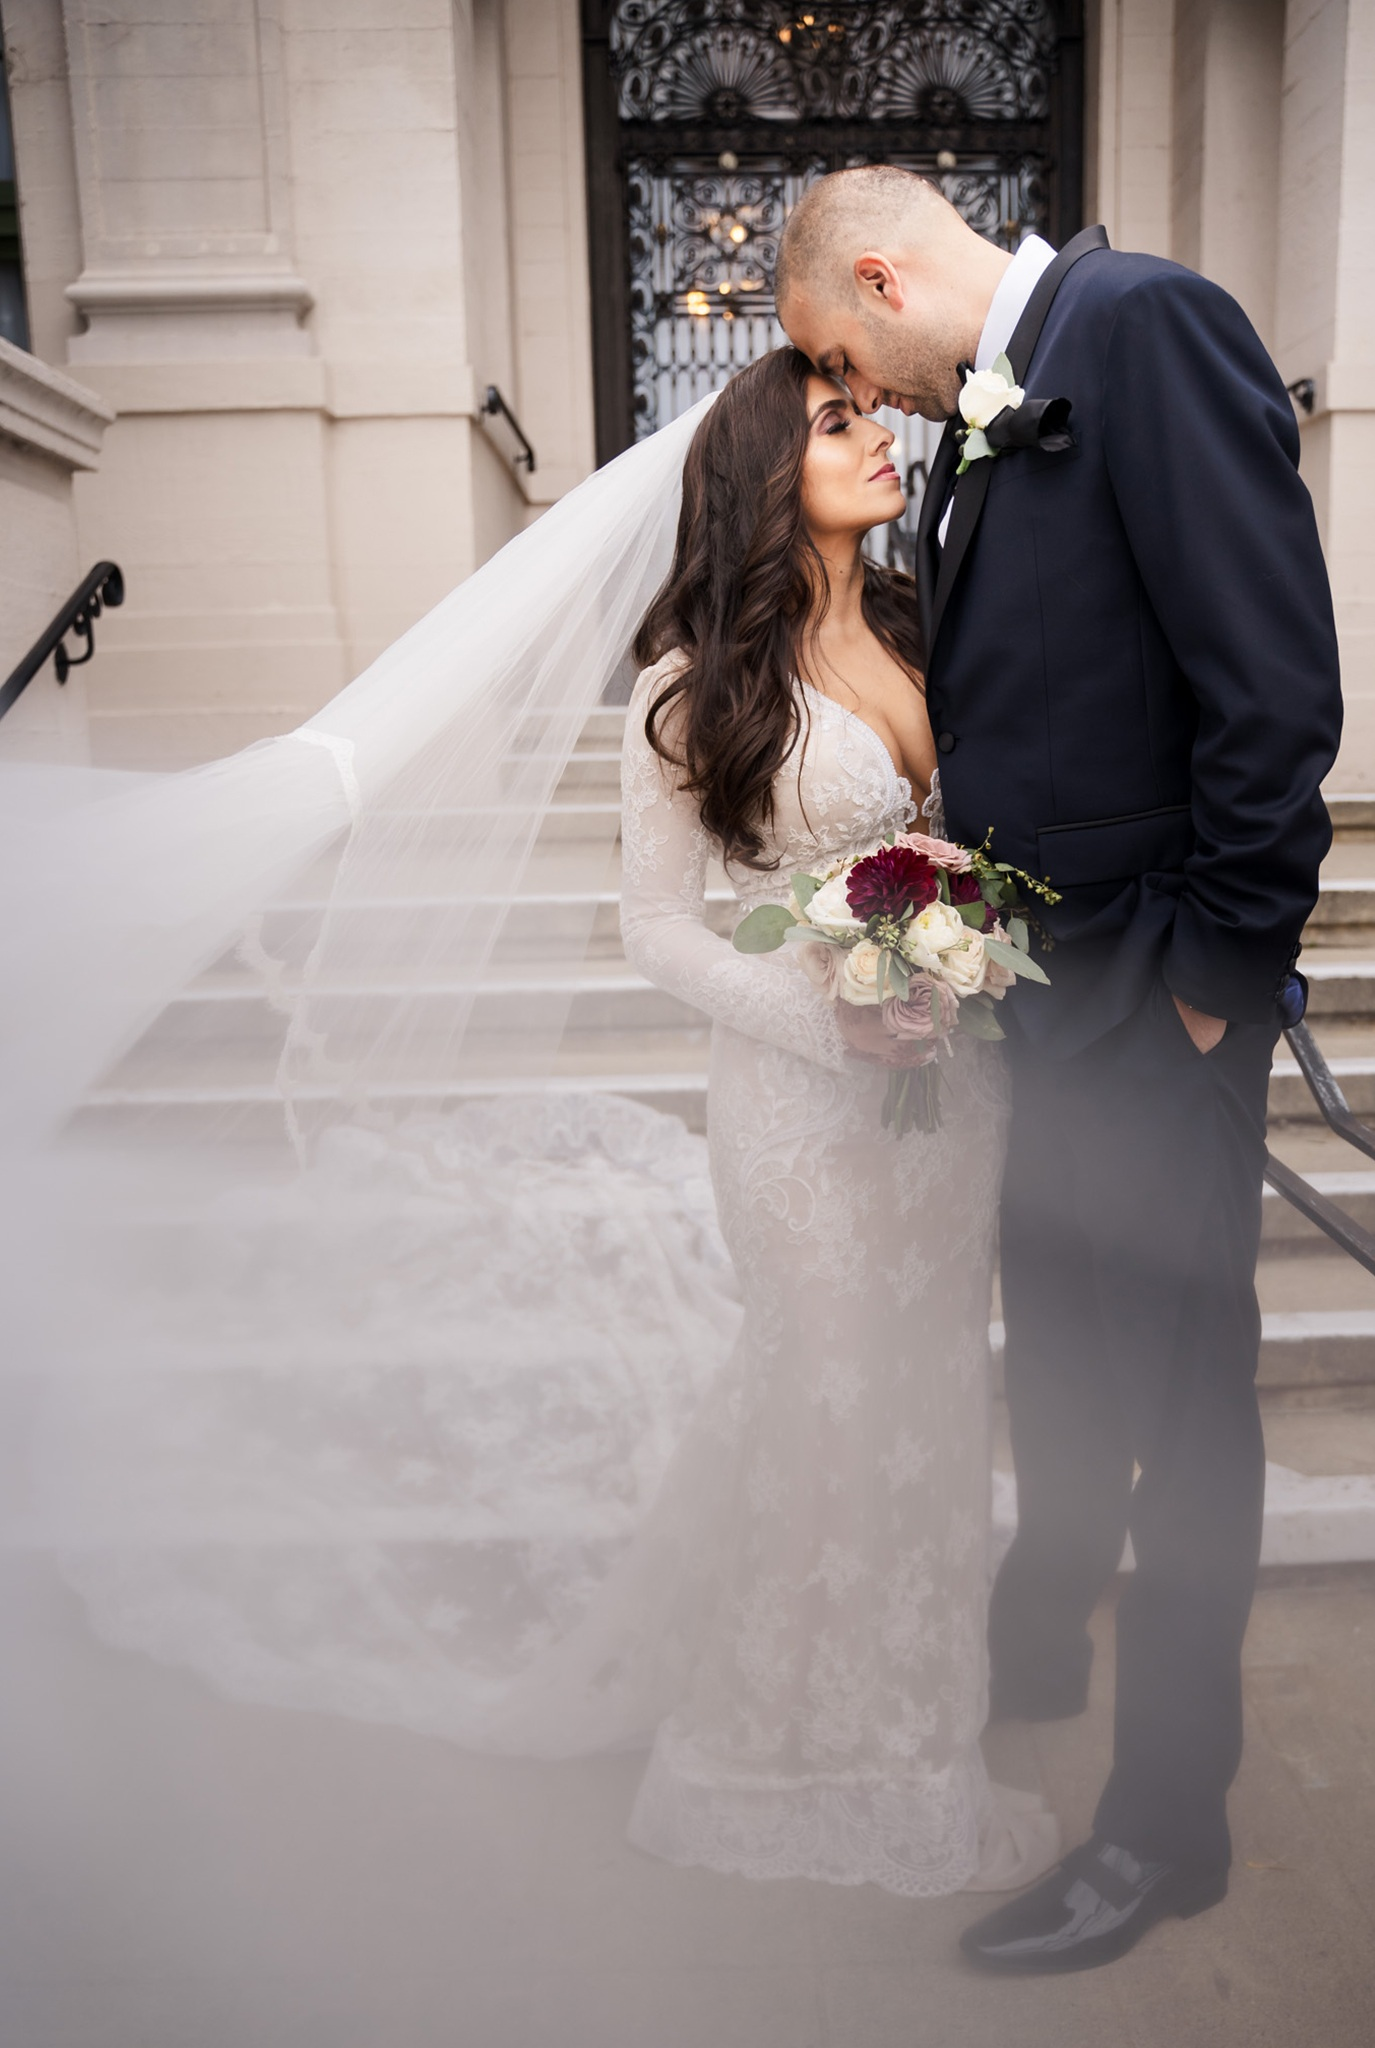 31-The-Ebell-Los-Angeles-Multicultural-Wedding-Photography.jpg